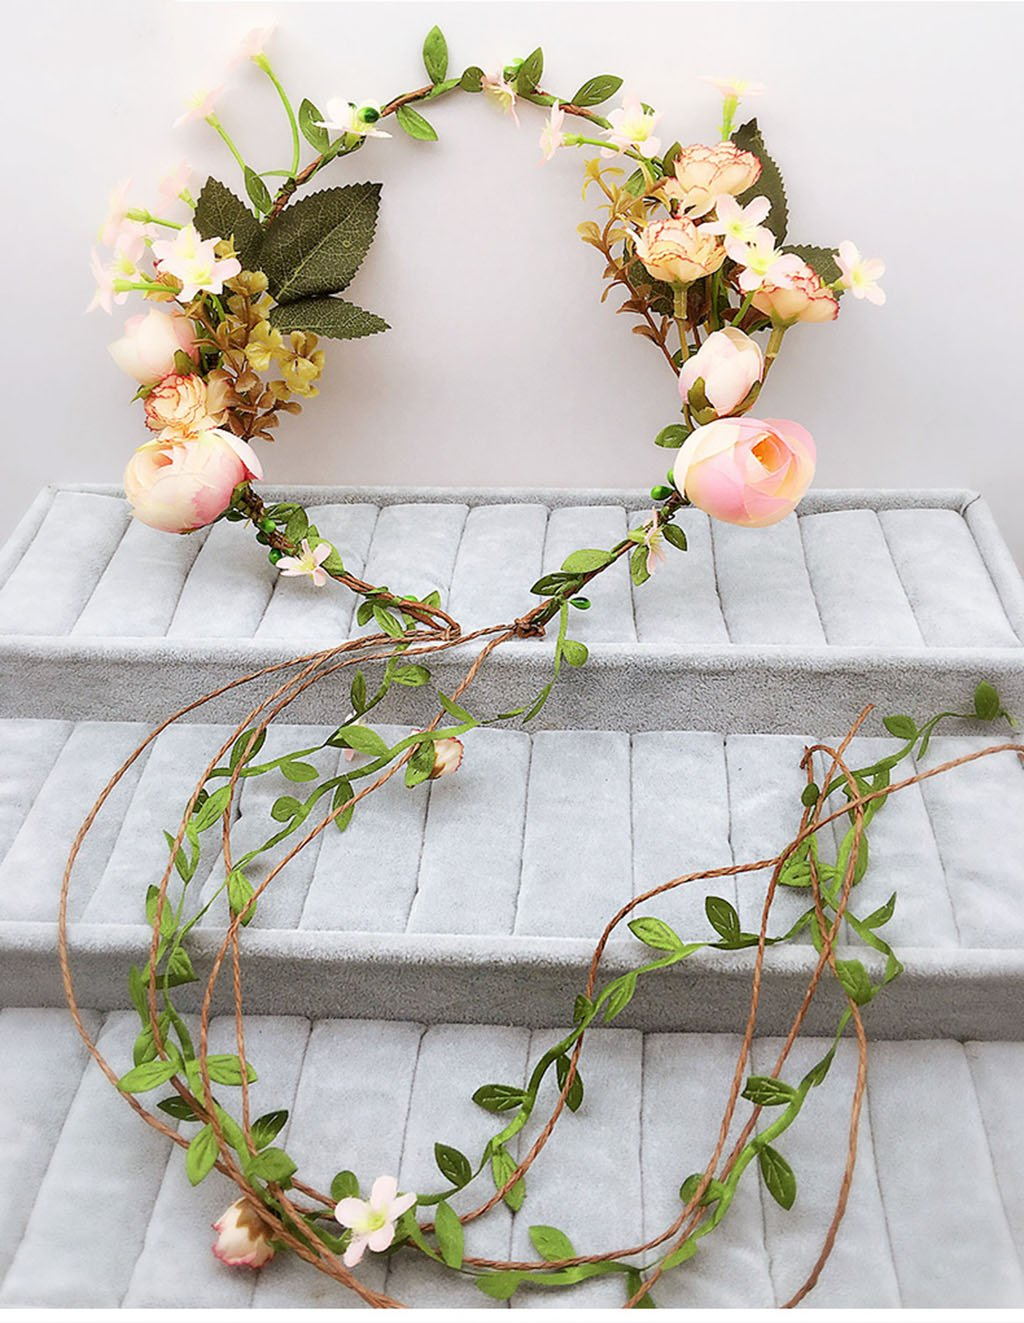 Wreath Flower, Headband Flower Garland Handmade Wedding Bride Party Ribbon Headband Wristband Hairband Beige (Color : D)